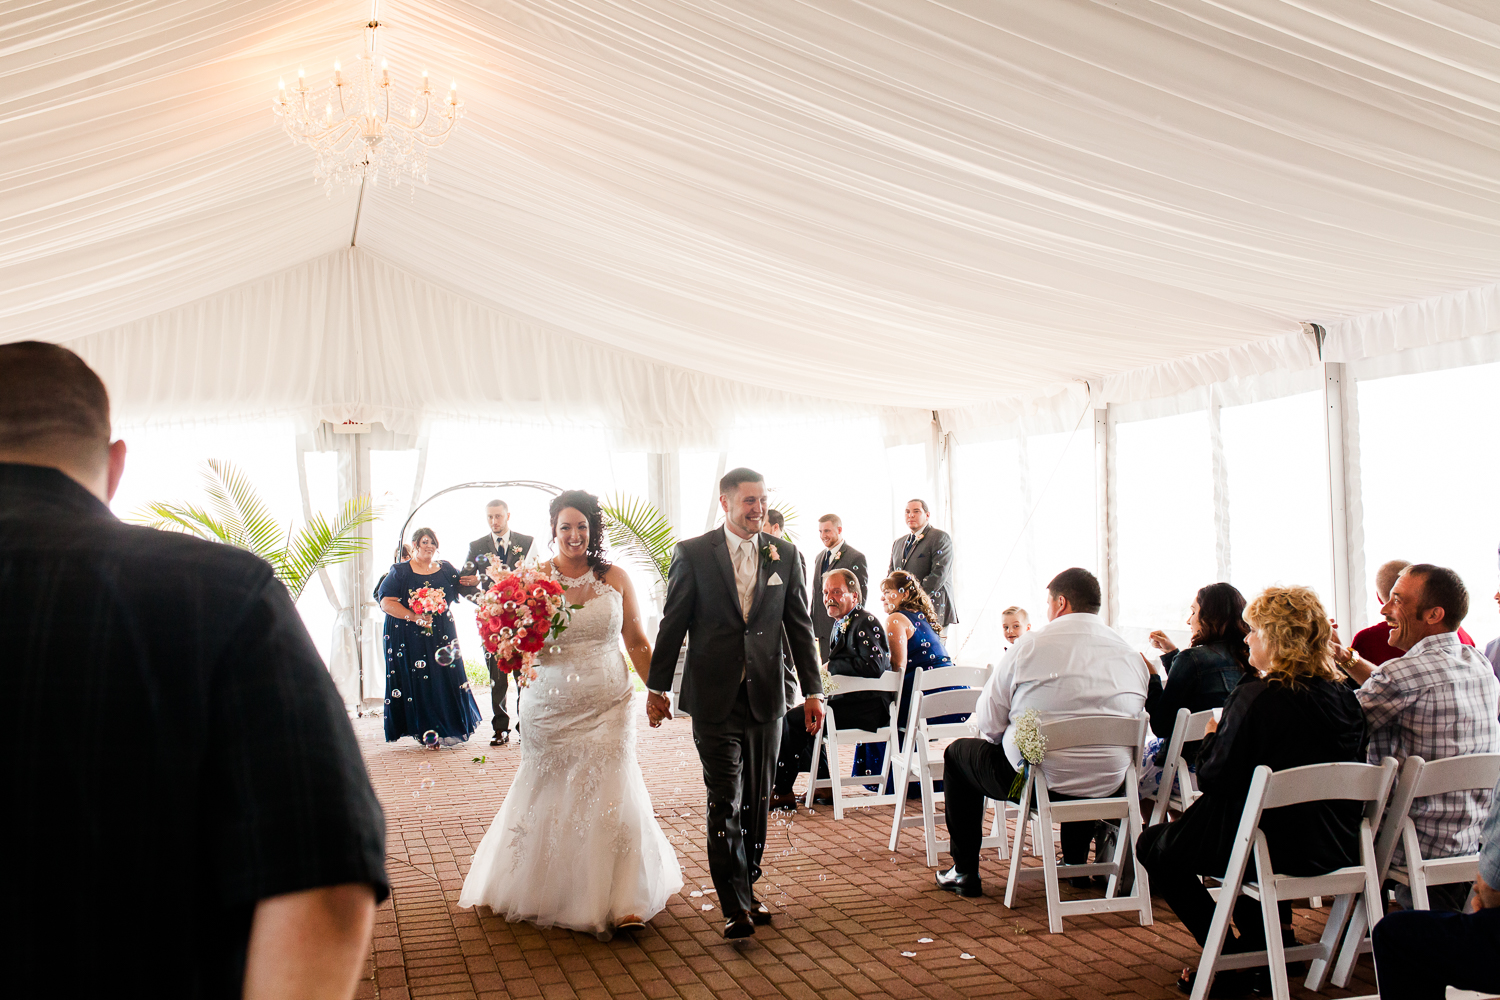 Bride and groom walk back down the aisle after the ceremony. Guests blow bubbles at them.